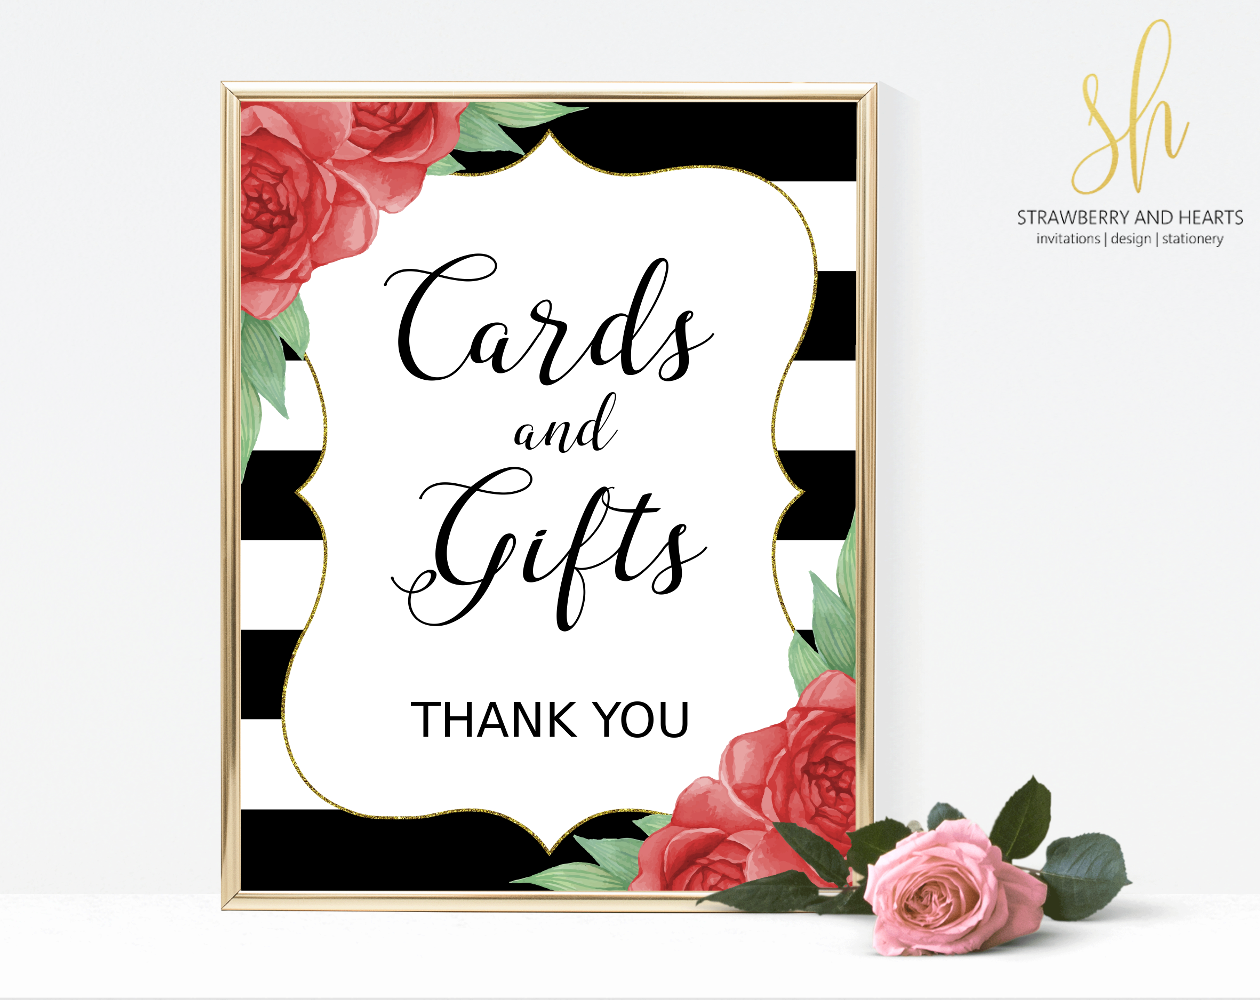 Wedding decoration png images  Striped Cards and Gifts Sign  Wedding Signage